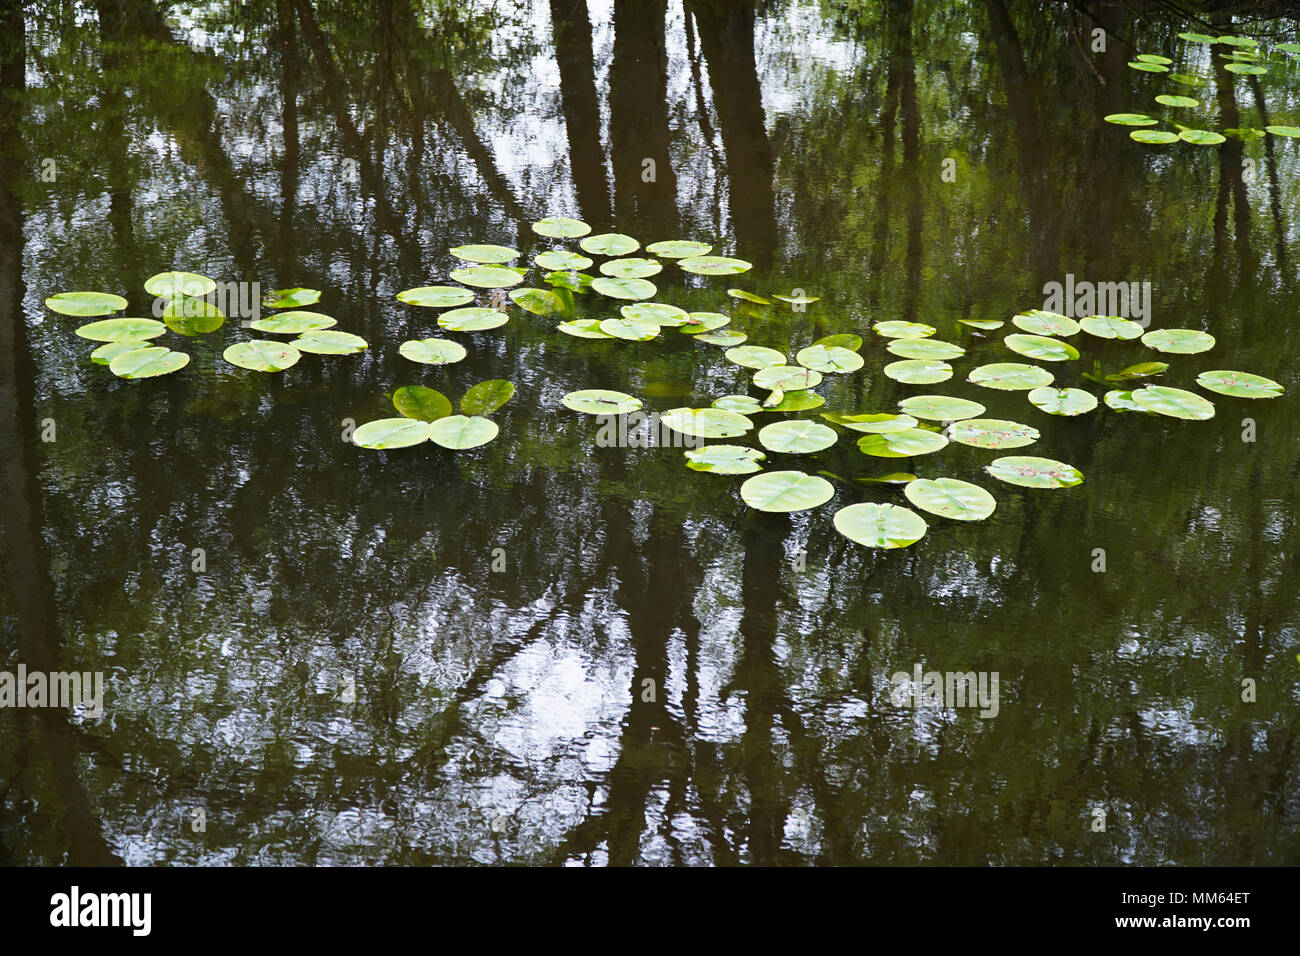 Calm Lake Water Reflections (Trees & Overcast Cloudy Sky) - 2 - Stock Image